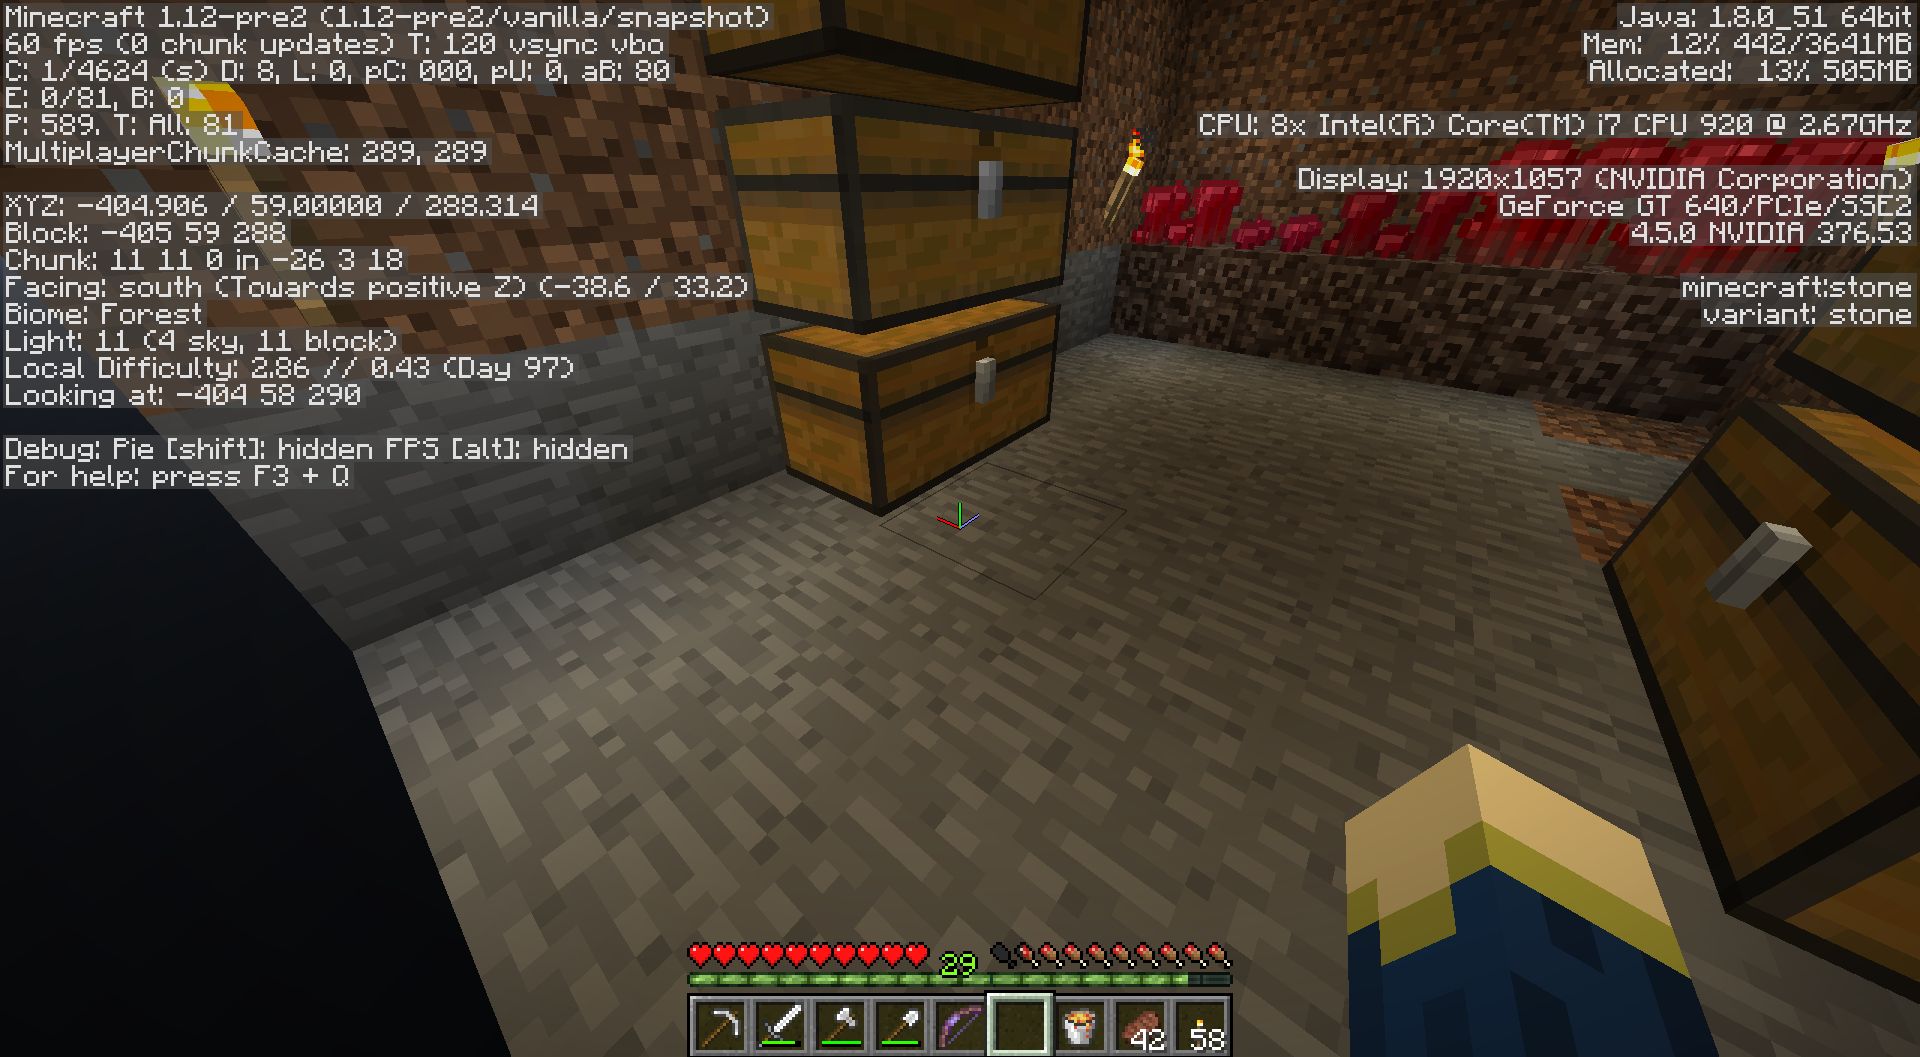 MC-63020] Chunks are not rendered in first person in some